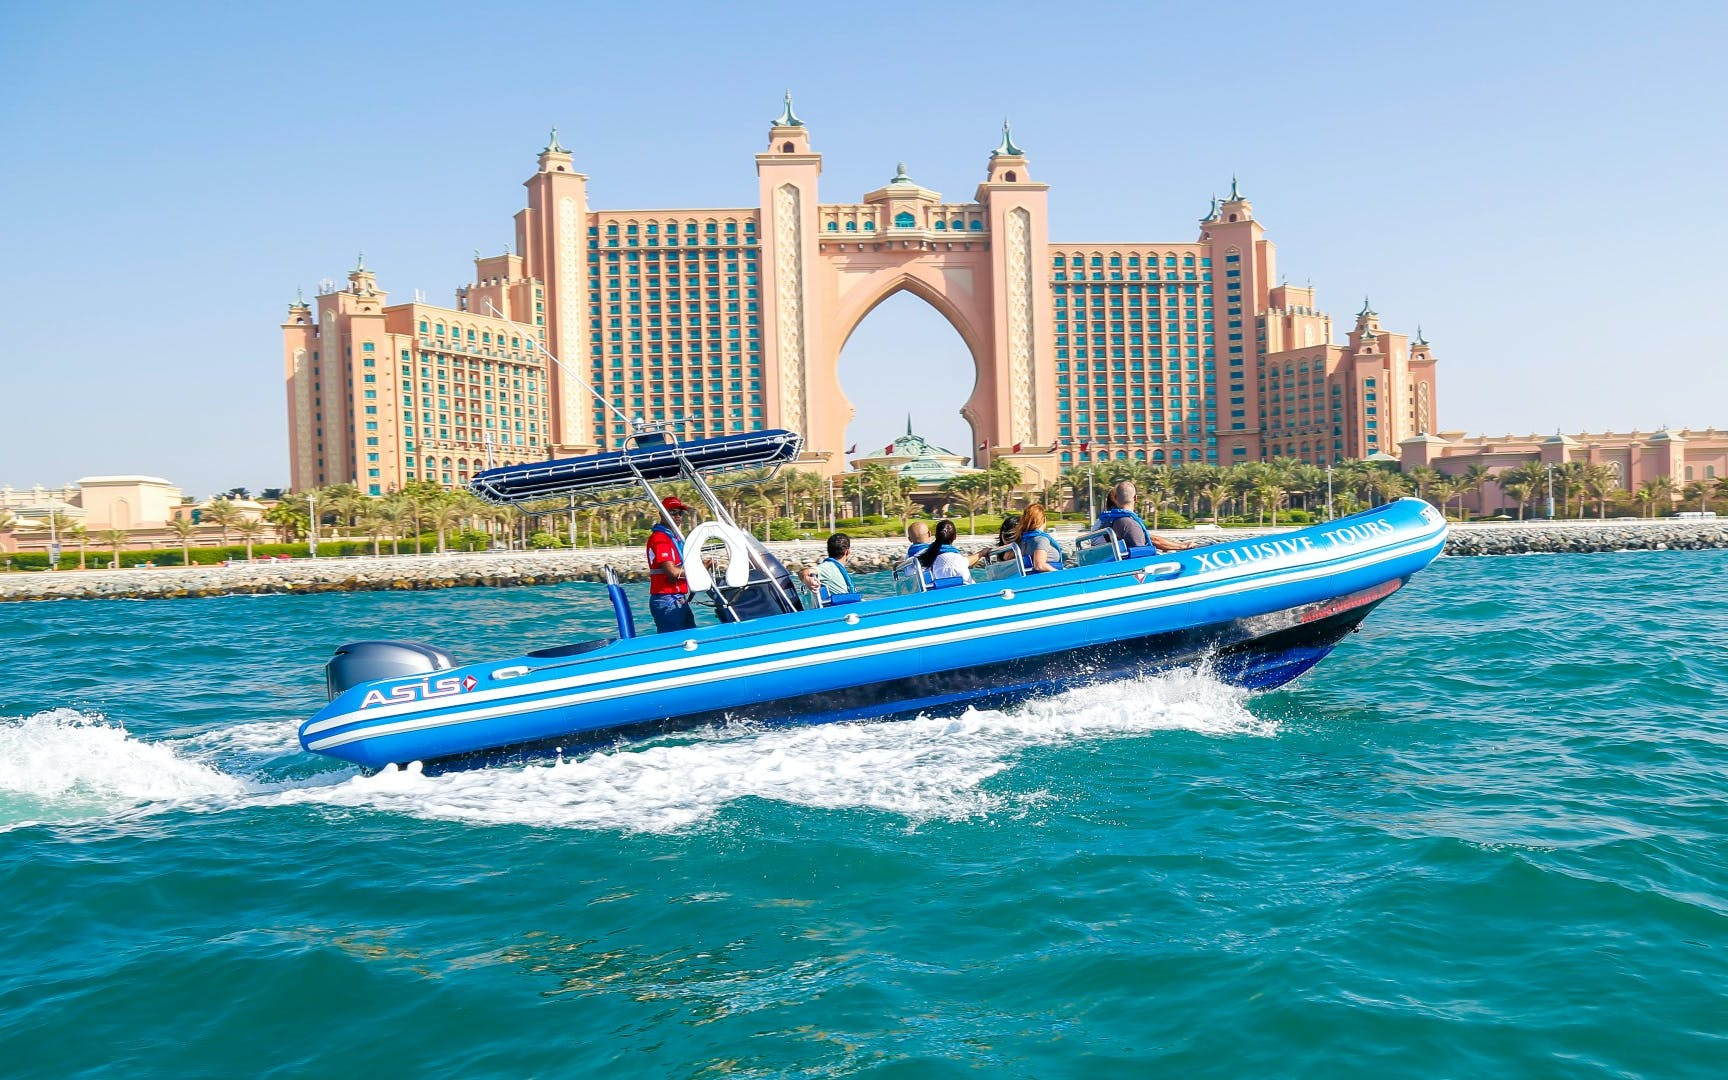 90 Minutes Luxury RIB Boat Cruise - Guided Tour of Palm Jumeirah & Dubai Marina